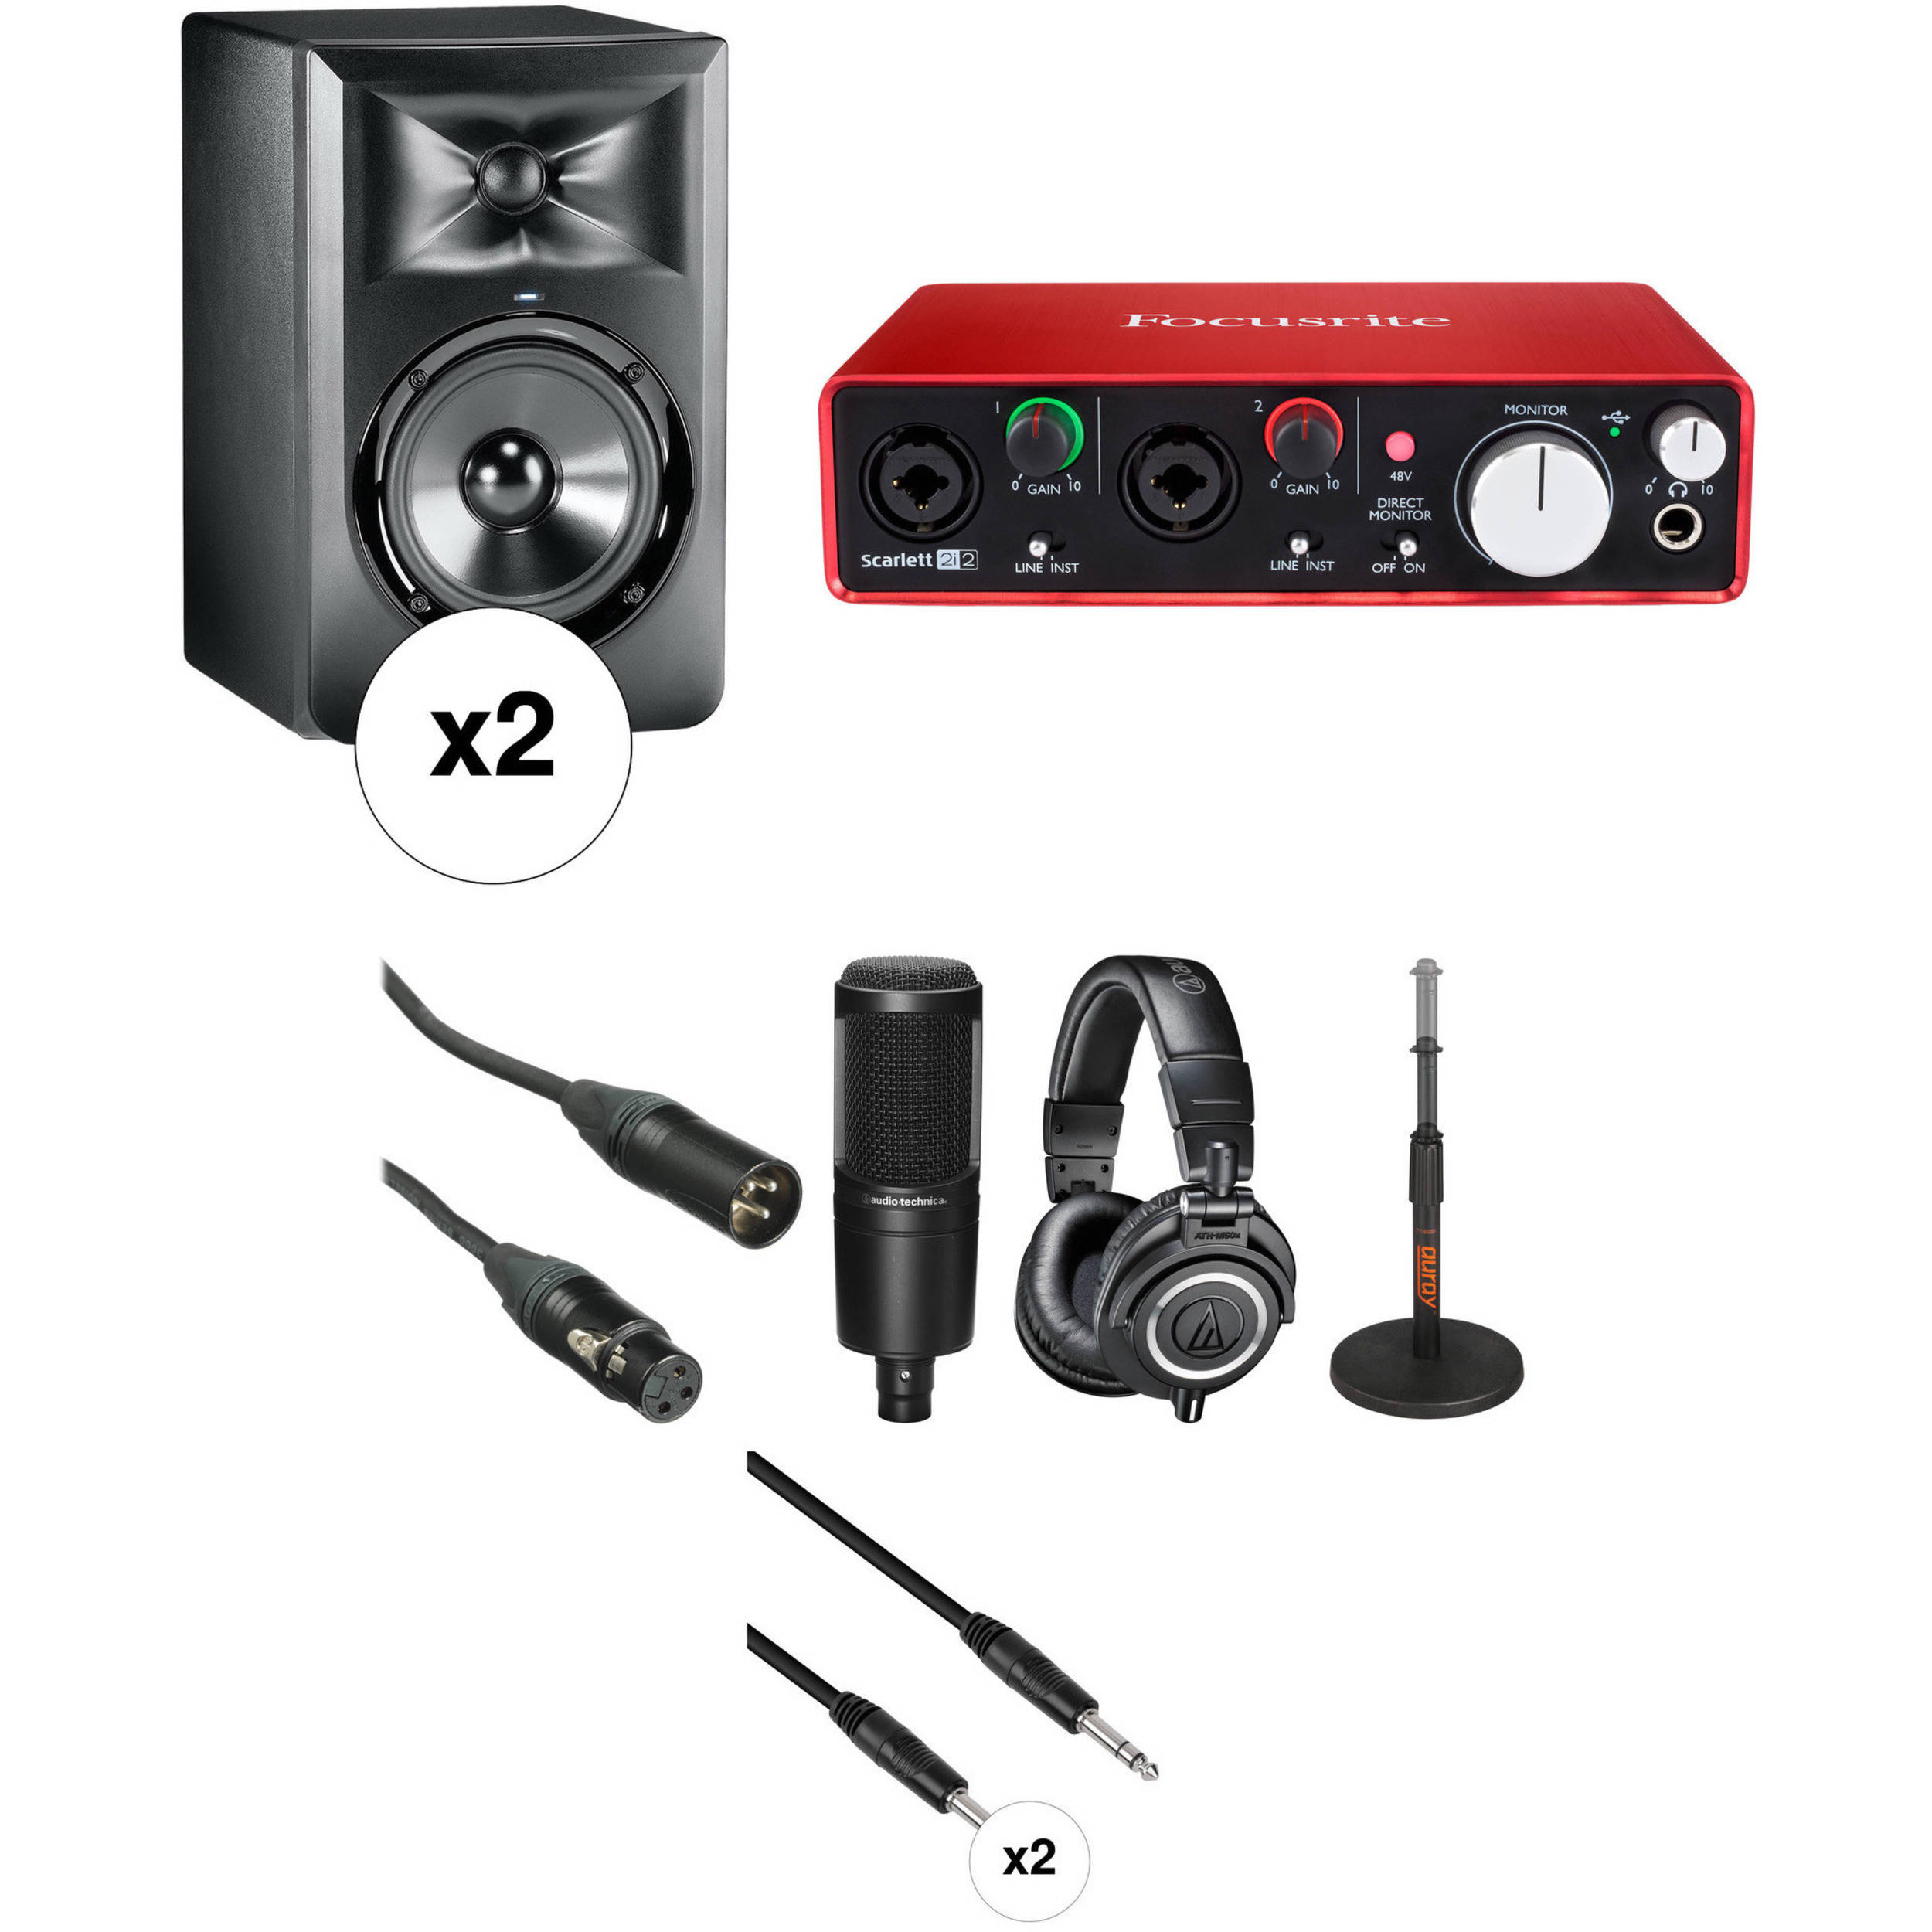 jbl professional. jbl professional recording kit with lsr305 monitors, audio interface, microphone, and headphones jbl c